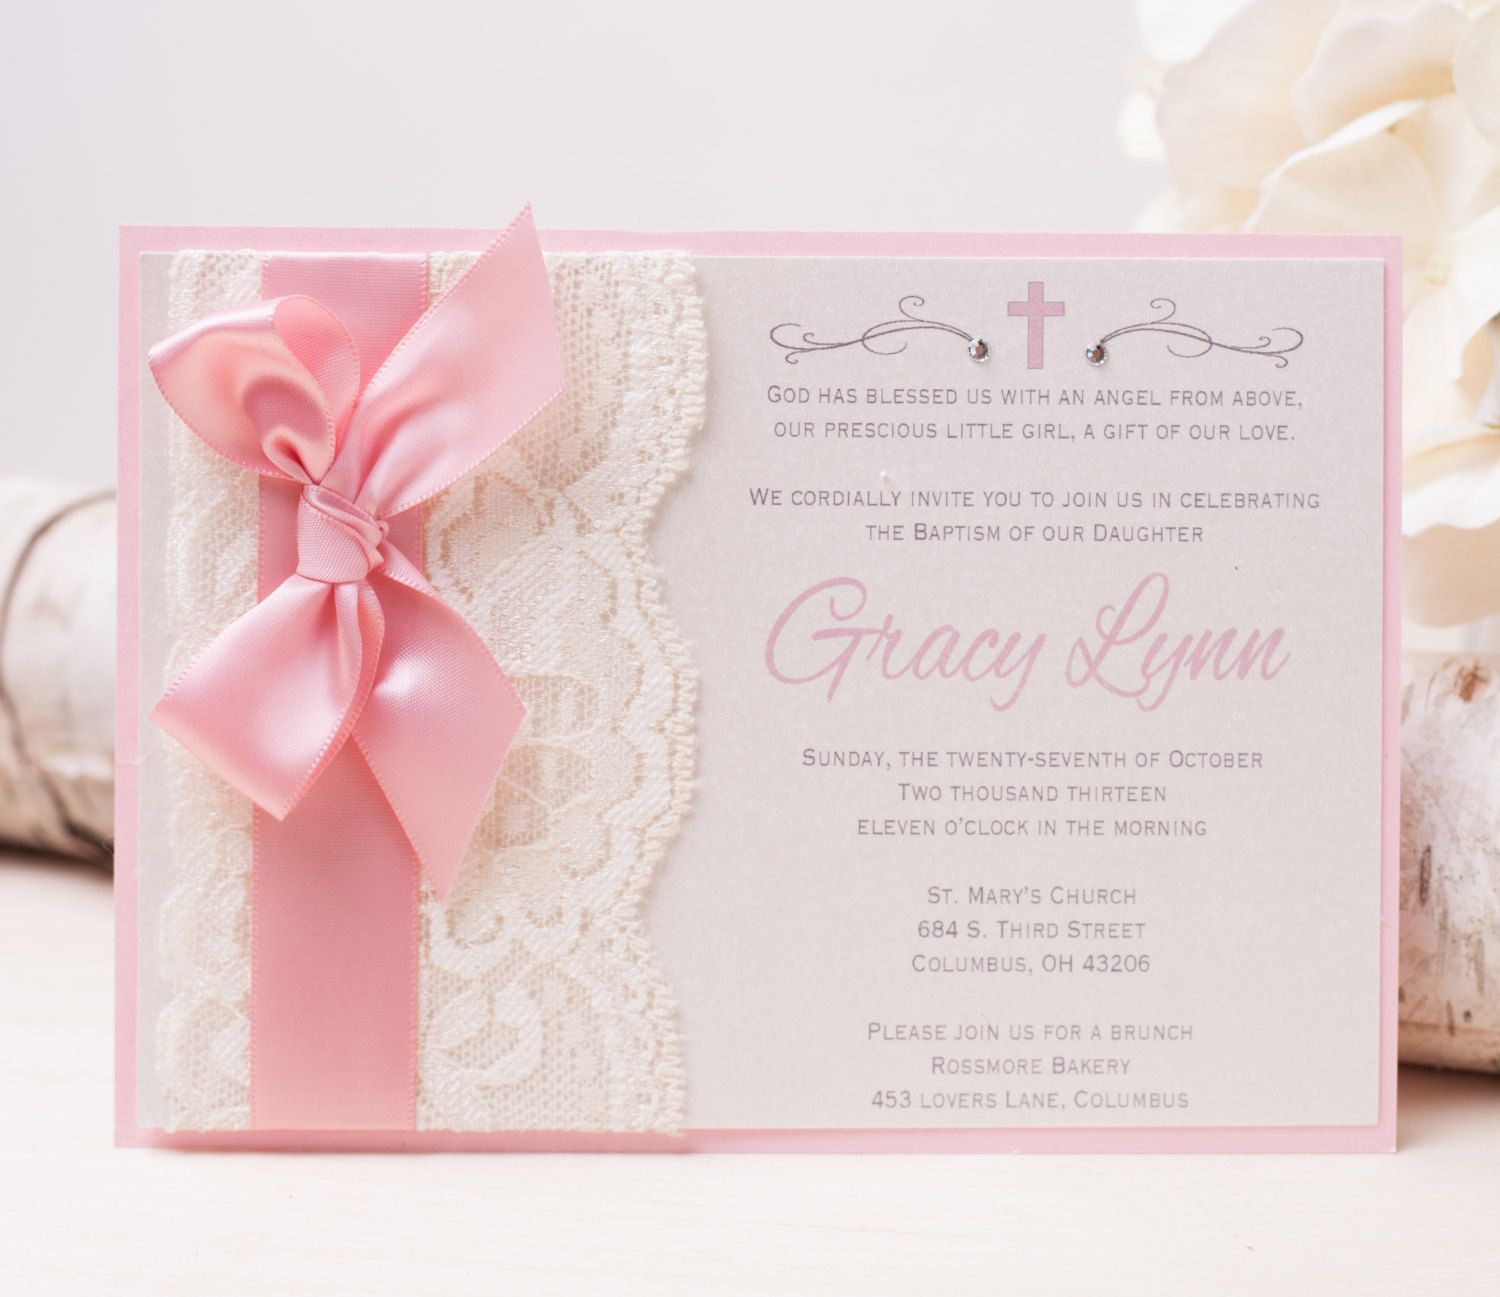 unique homemade baby shower invitation ideas%0A GRACY  Pink Lace Baptism Invitation   Christening Invitation   Religious  Invitation   Baby Shower